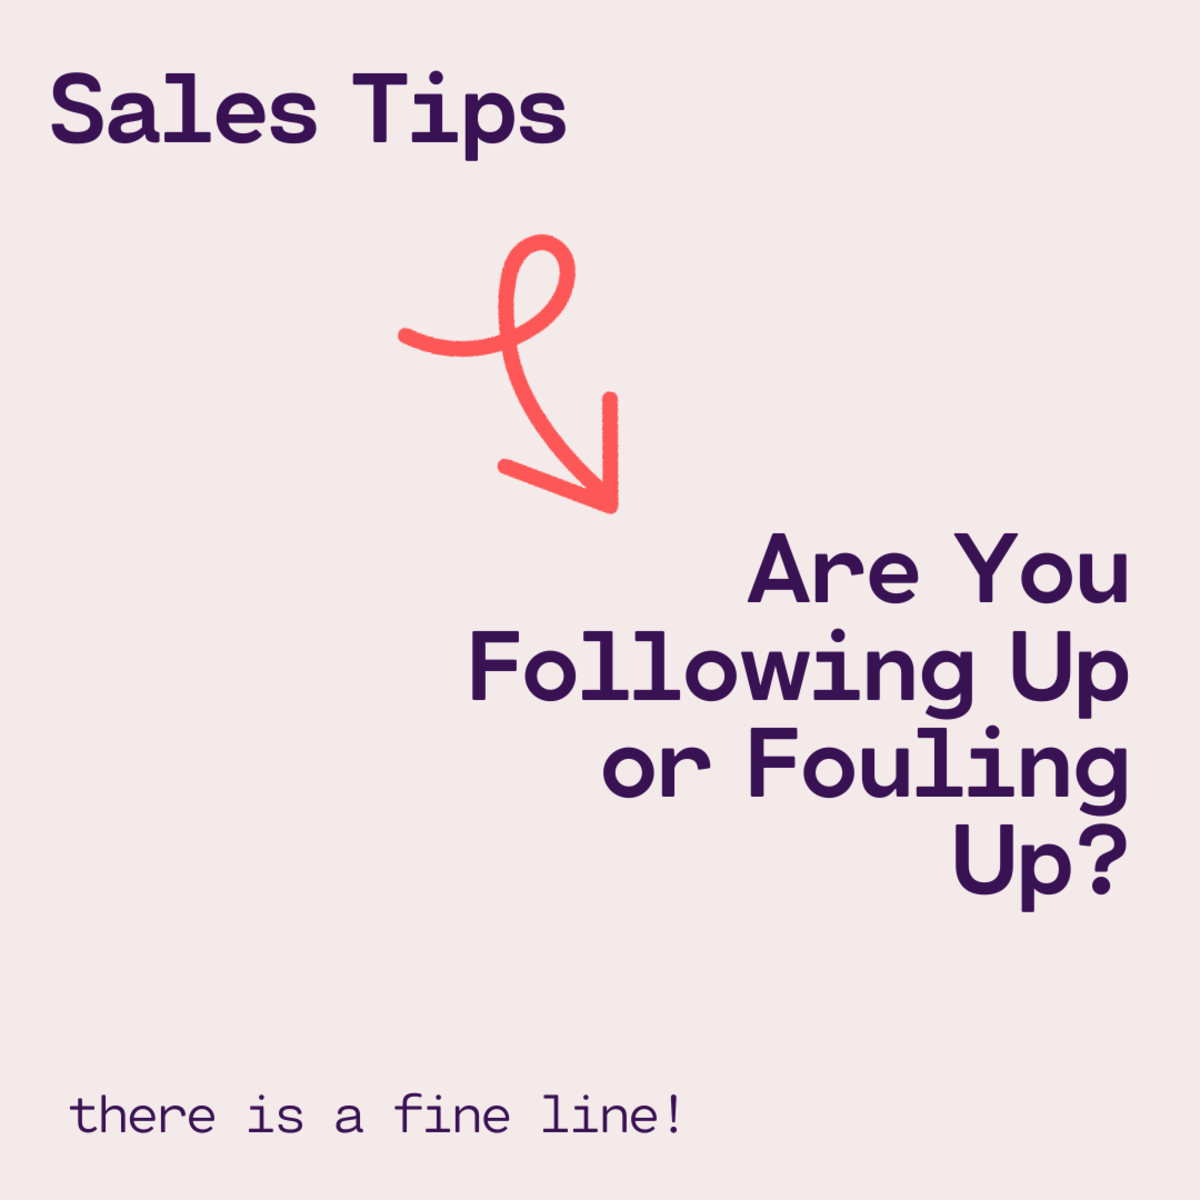 Sales Tips: Are You Following Up or Fouling Up?